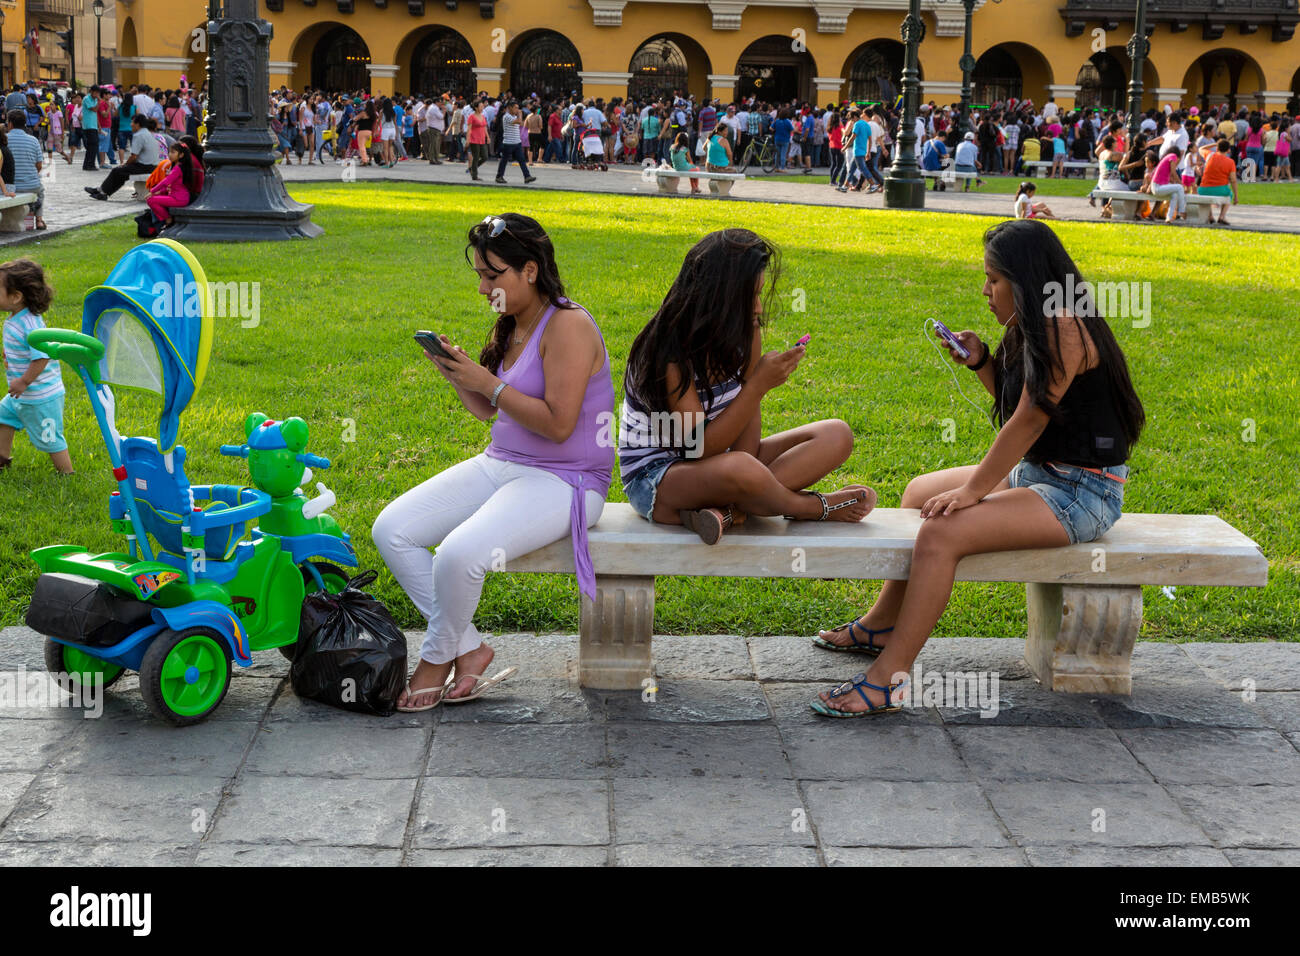 Peru, Lima.  Three Young Women Checking their Cell Phones in the Plaza de Armas, while young child walks away. - Stock Image